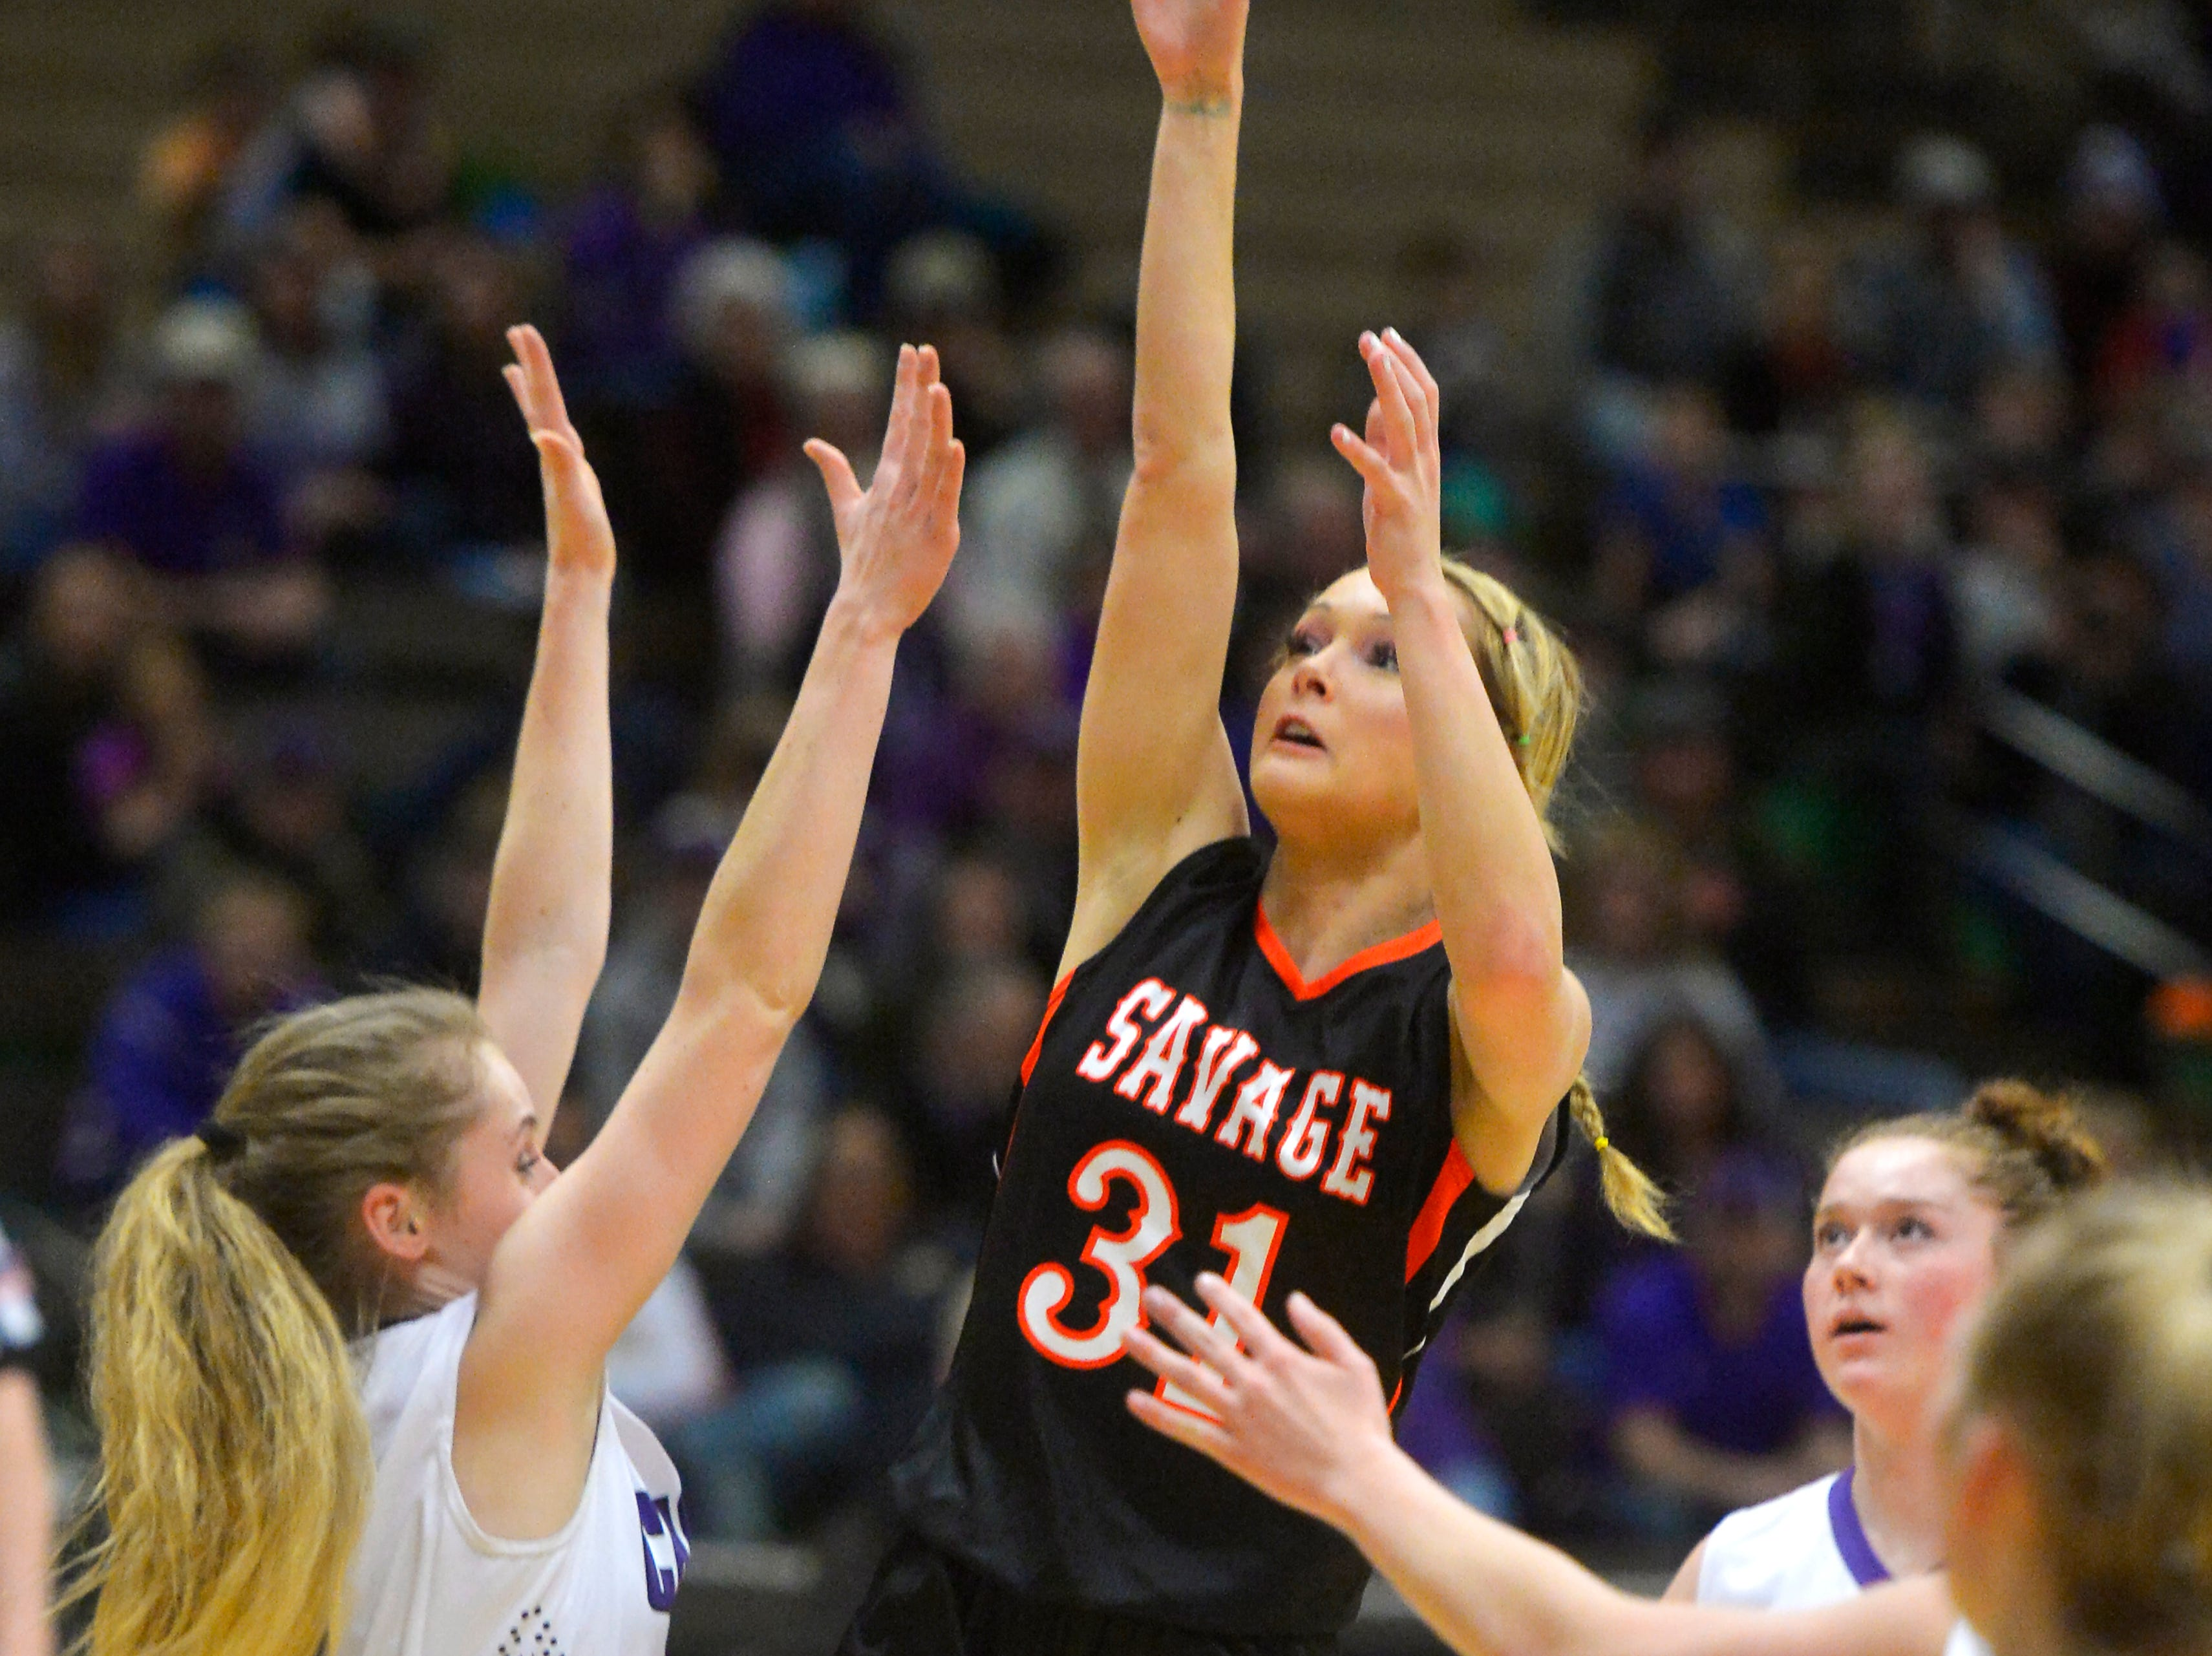 Savage's Tyler Lien shoots in Thursday's game against Charlo during the Girls State C Basketball Tournament in the Four Seasons Arena.